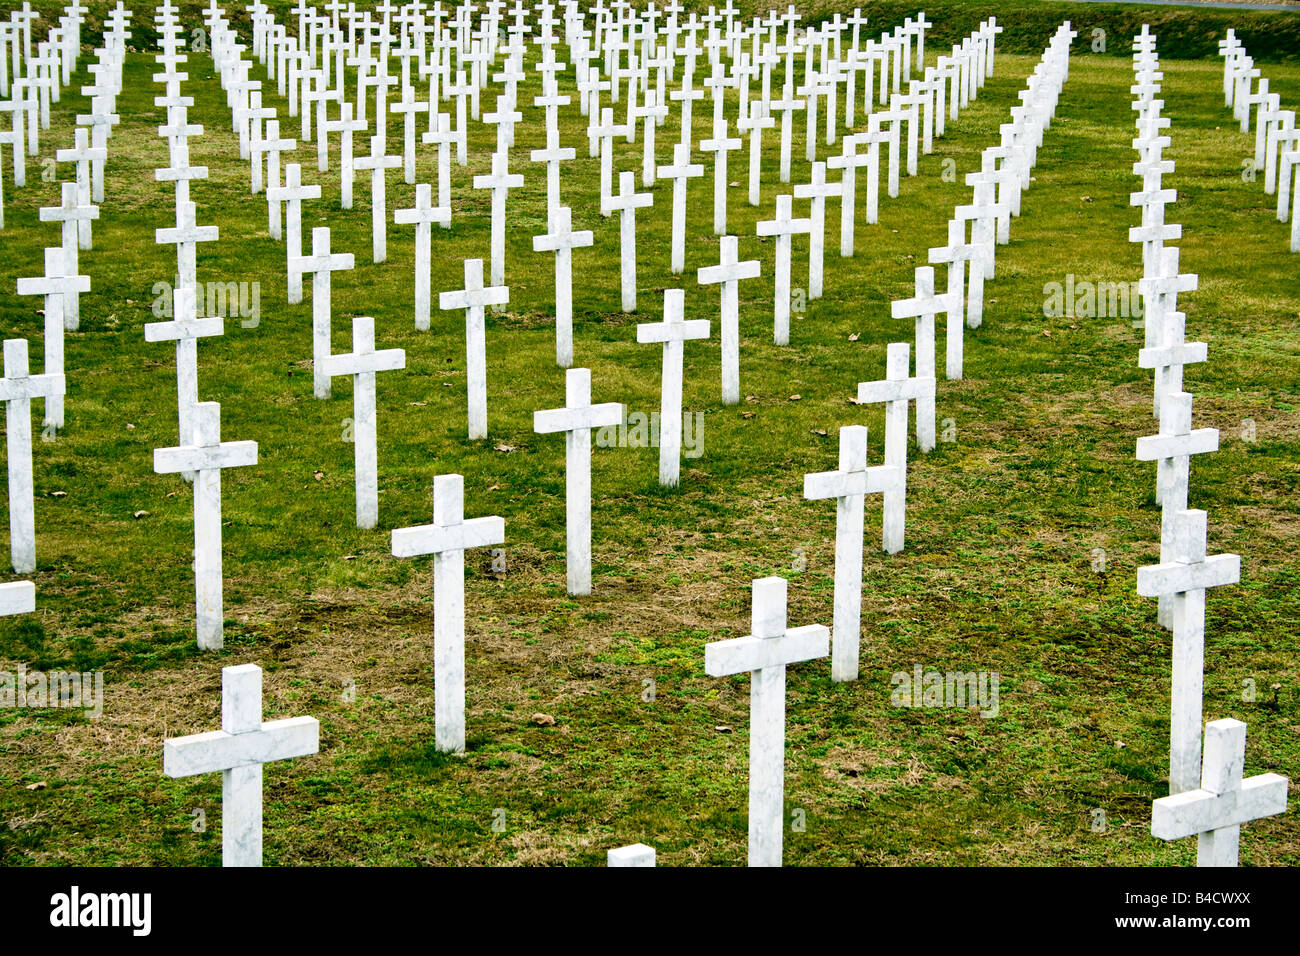 CROATIA, VUKOVAR. Cemetary in Vukovar of the Croatian soldiers killed in the defence of the city. Stock Photo